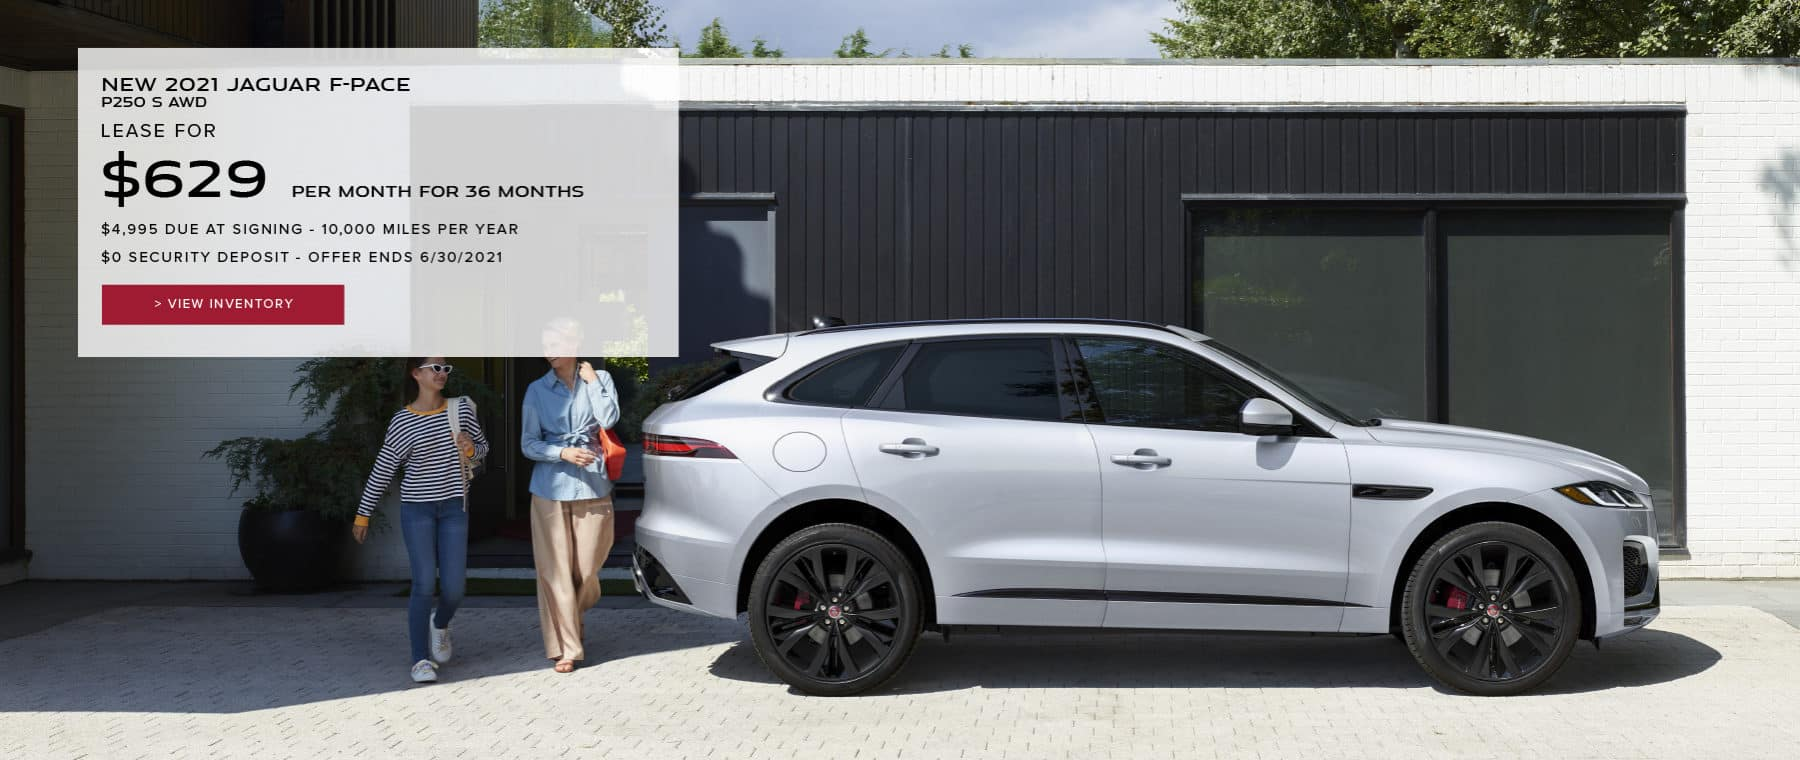 NEW 2021 JAGUAR F-PACE P250 S AWD. $629 PER MONTH. 36 MONTH LEASE TERM. $4,995 CASH DUE AT SIGNING. $0 SECURITY DEPOSIT. 10,000 MILES PER YEAR. EXCLUDES RETAILER FEES, TAXES, TITLE AND REGISTRATION FEES, PROCESSING FEE AND ANY EMISSION TESTING CHARGE. OFFER ENDS 6/30/2021. VIEW INVENTORY. SILVER JAGUAR F-PACE PARKED IN DRIVEWAY.